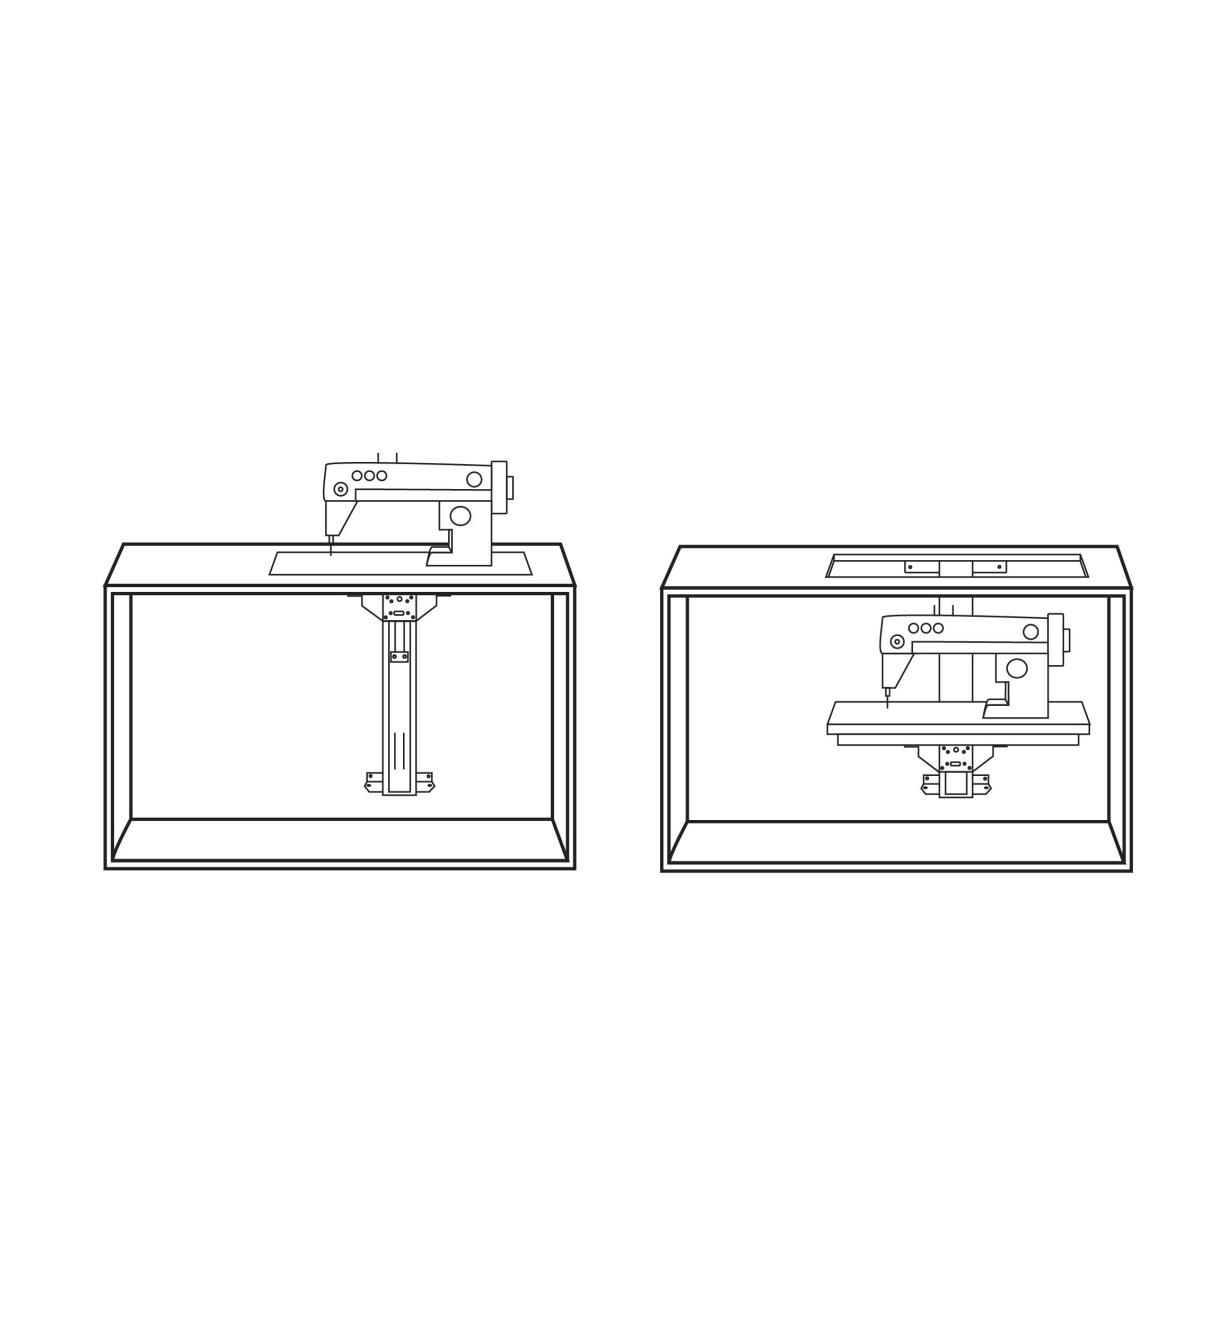 Diagram shows Sewing Machine Lift in upright and closed positions